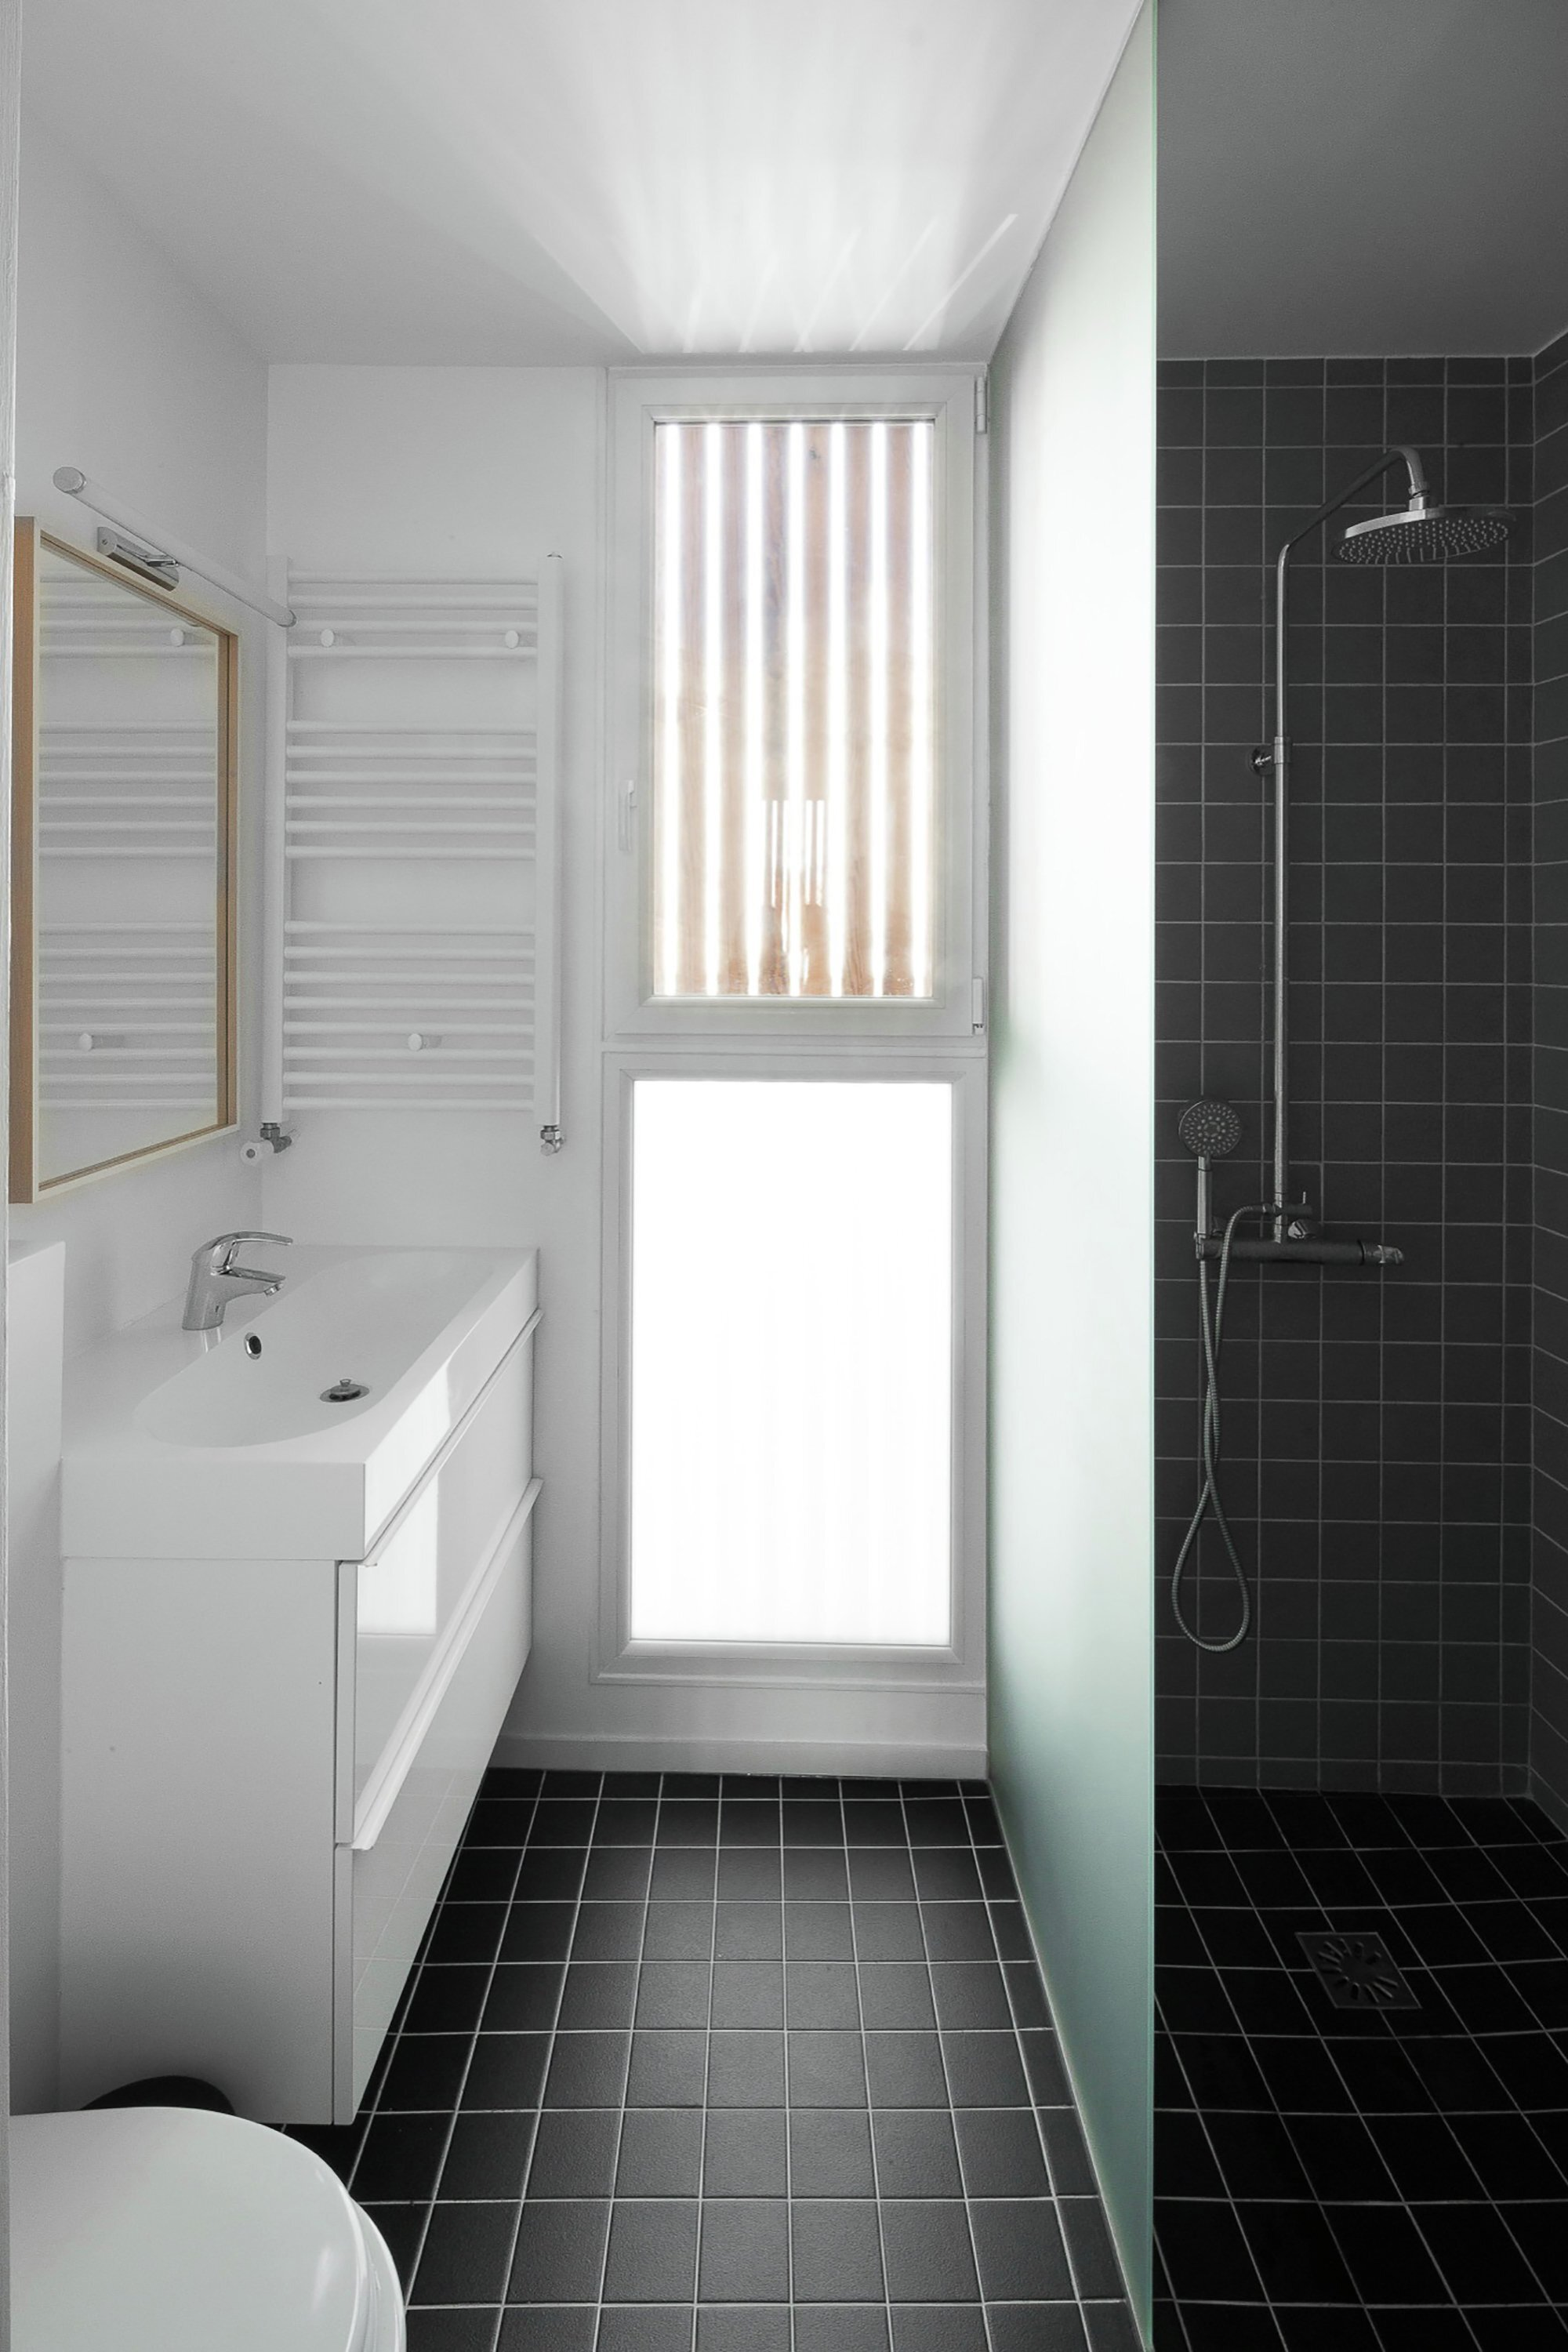 Urban Beat - WY-TO architects - France - Bathroom - Humble Homes